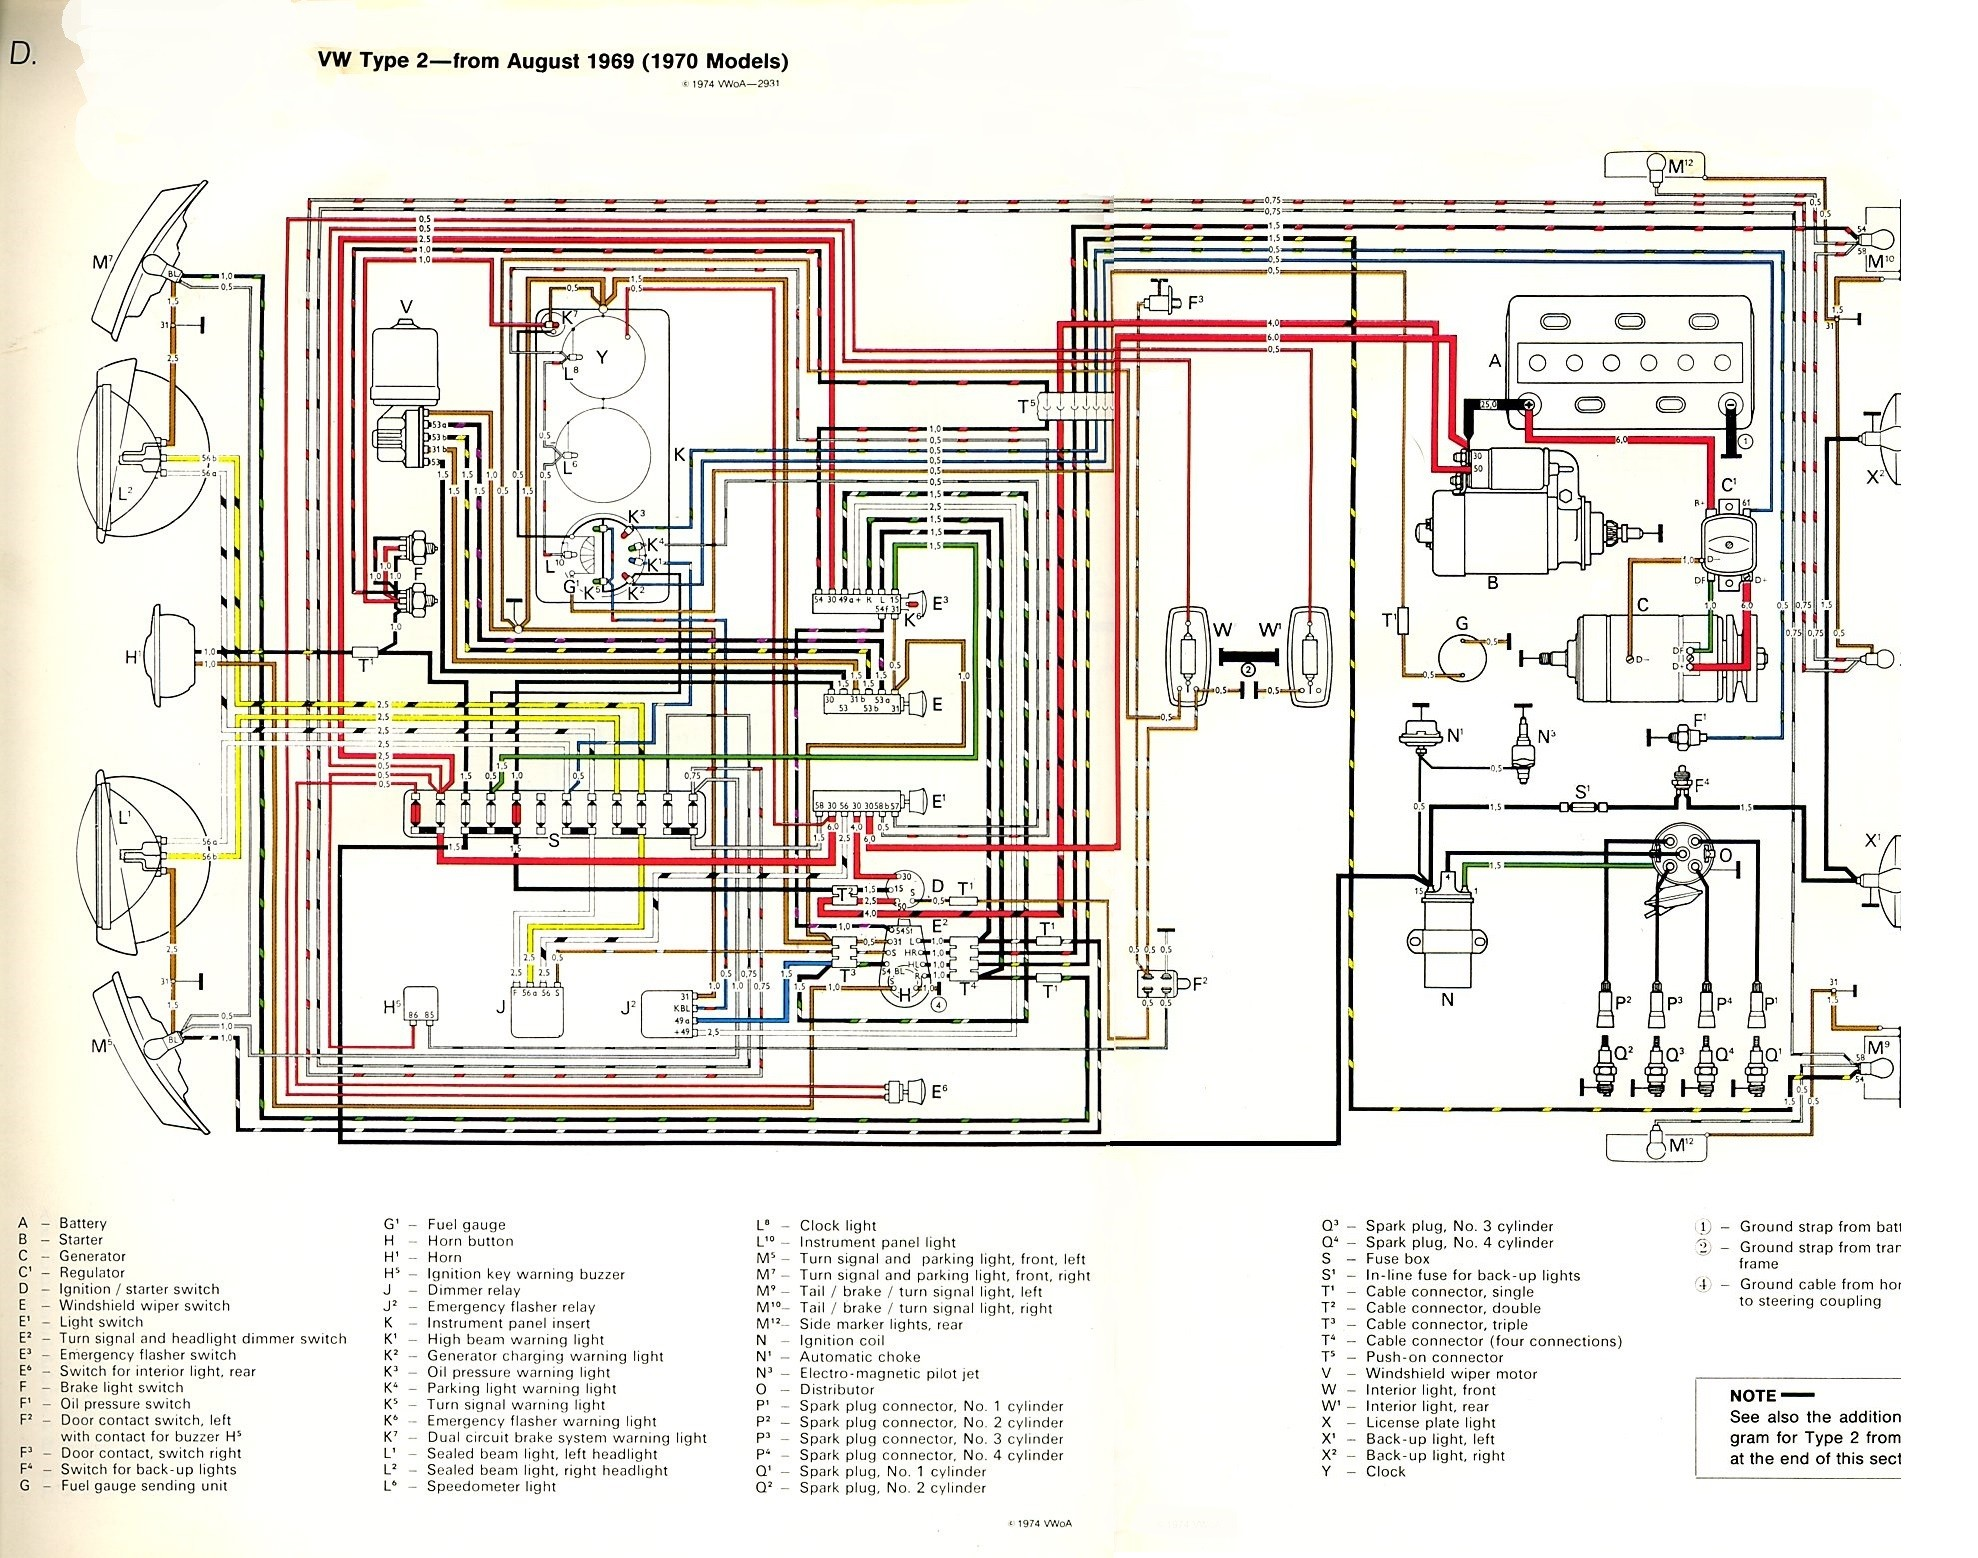 1994 firebird wiring diagram wiring diagrams 1968 chevelle wiring harness diagram